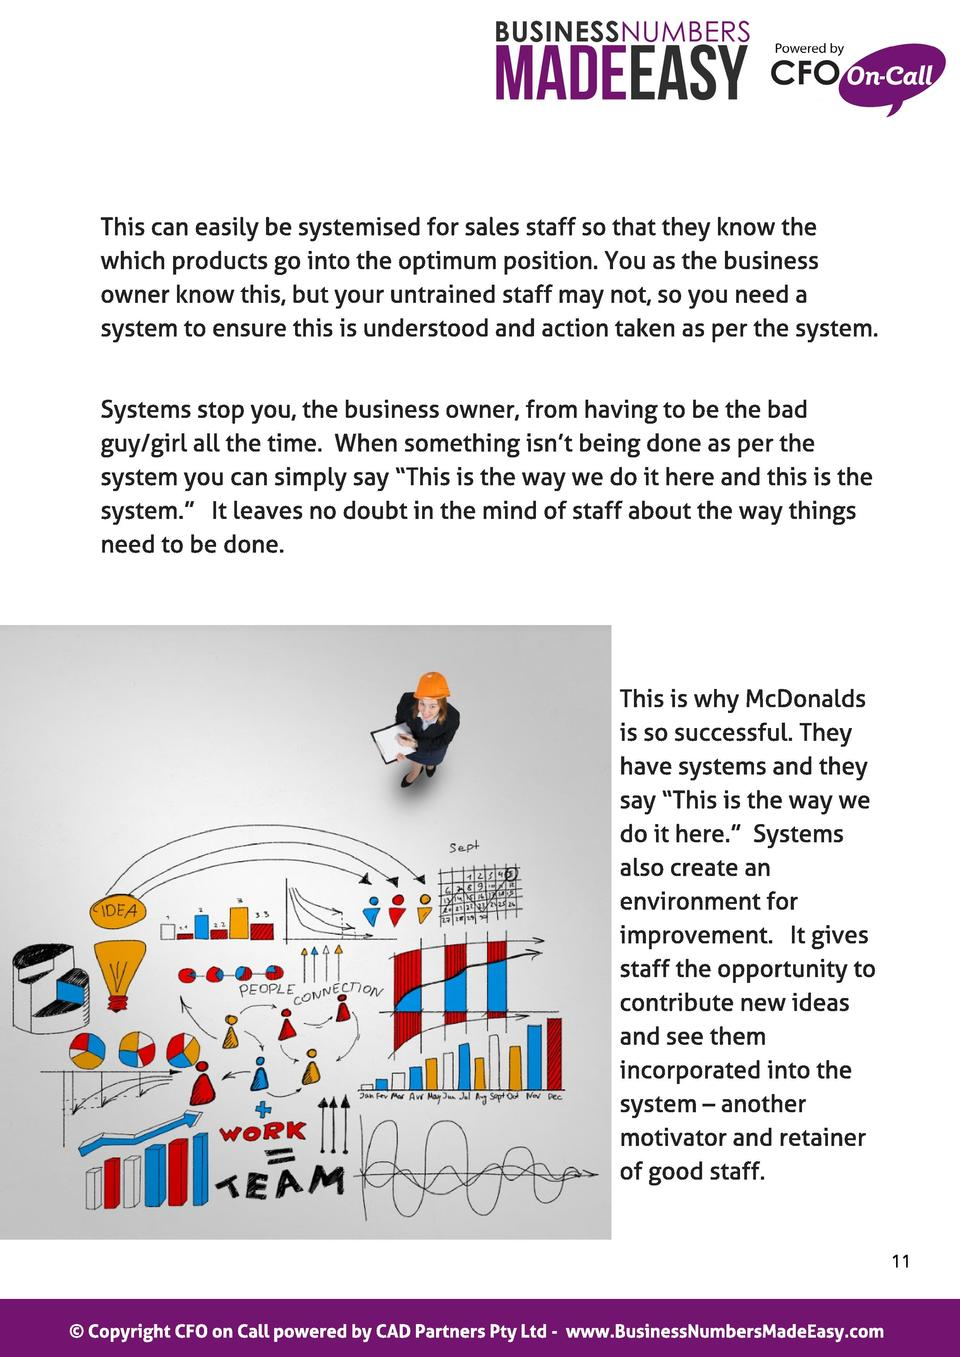 This can easily be systemised for sales staff so that they know the which products go into the optimum position. You as th...